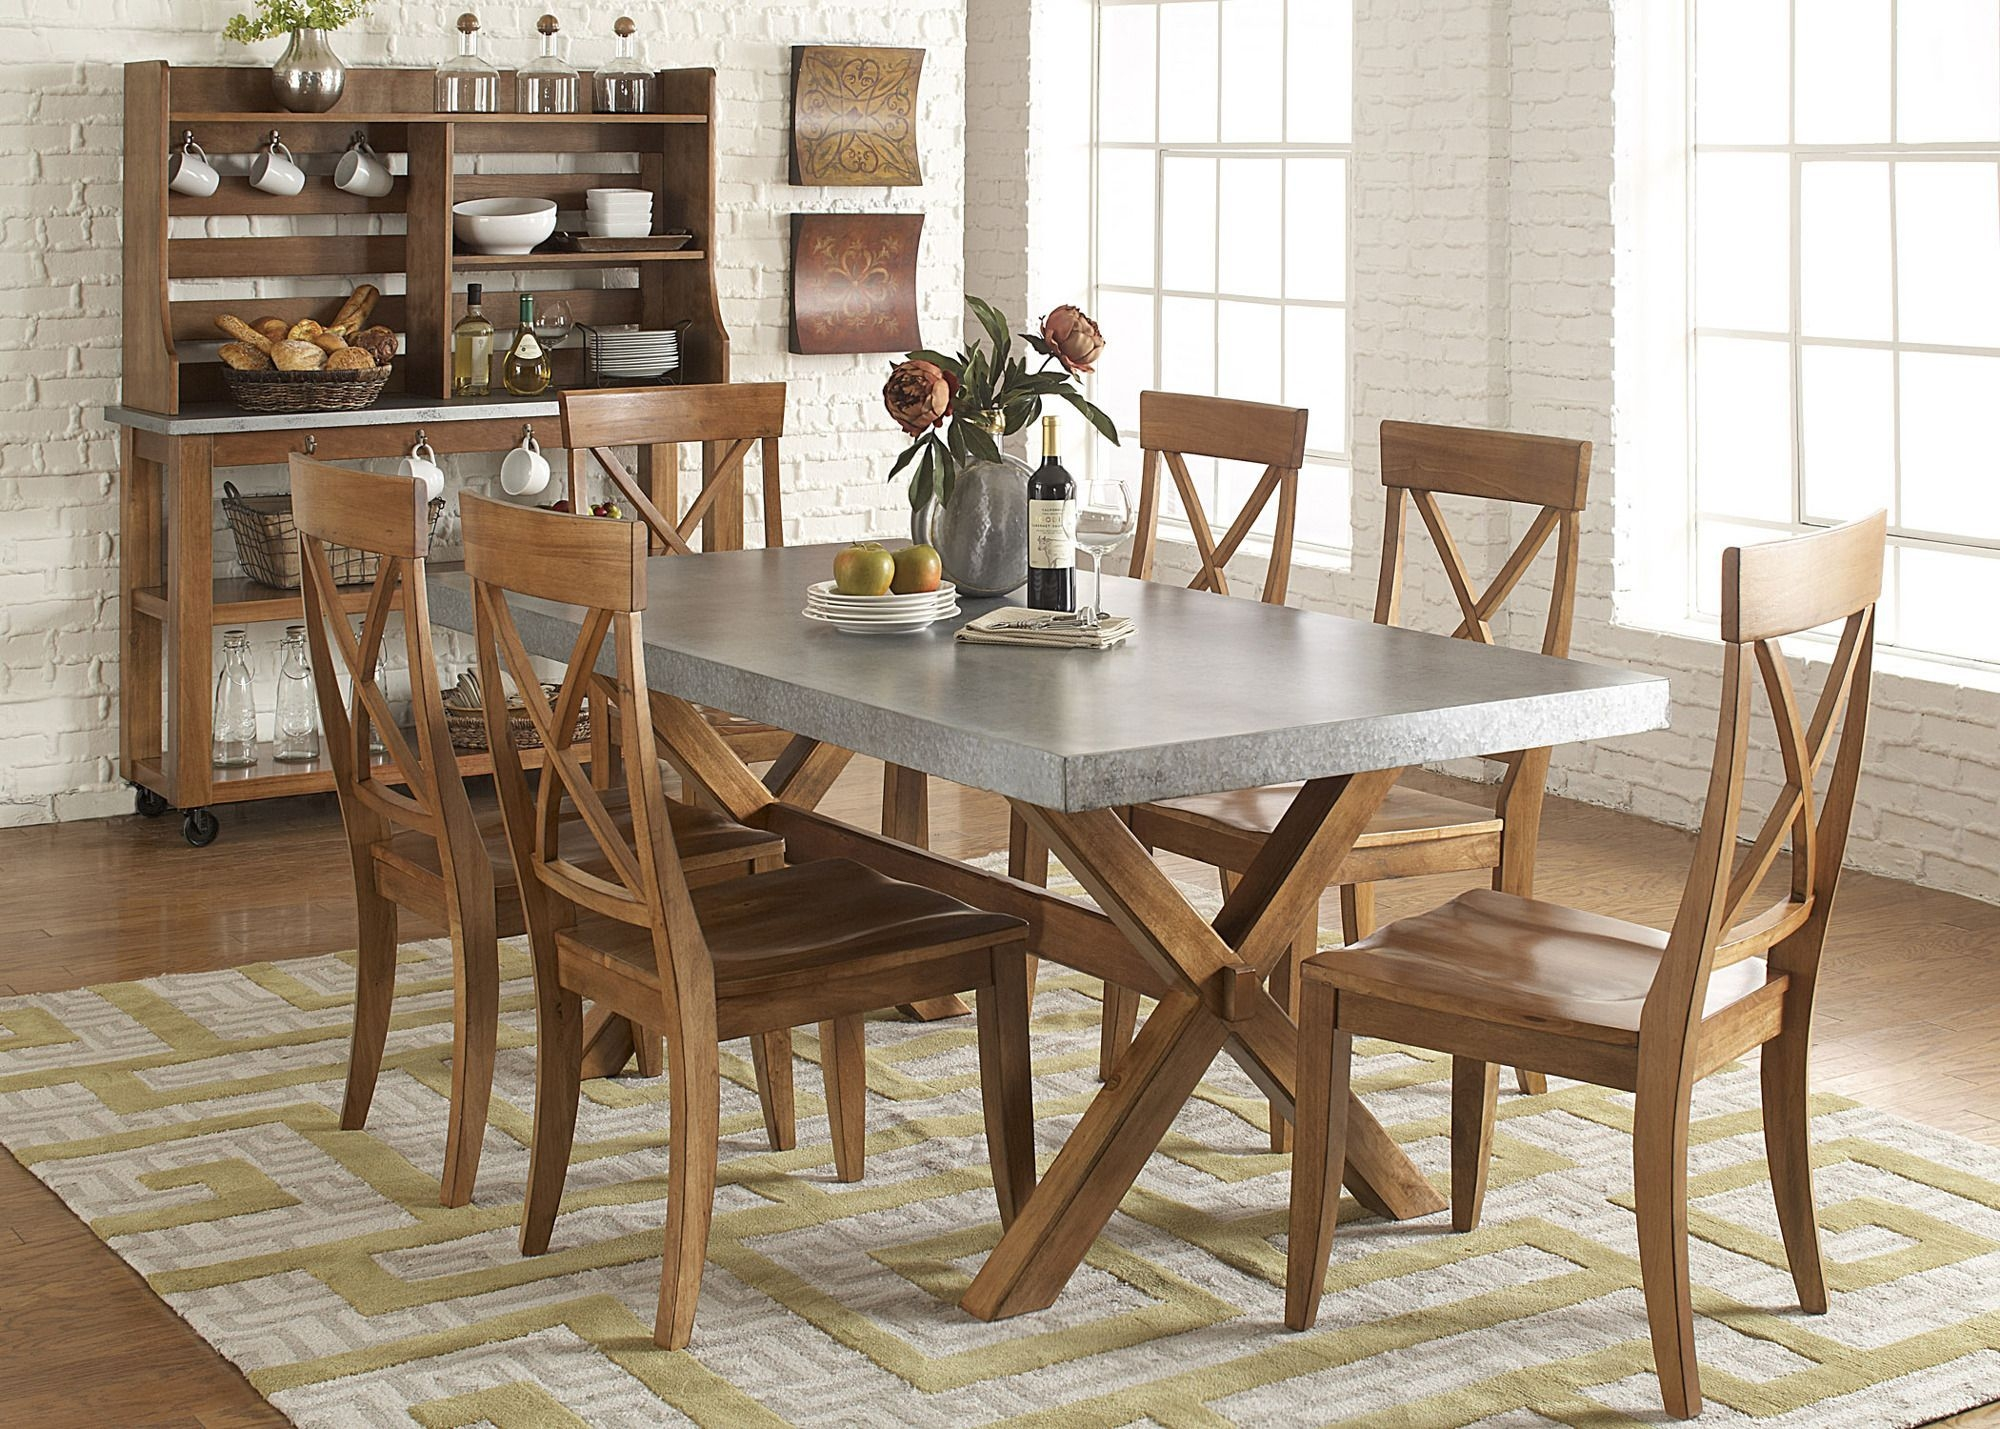 Keaton Rectangular Trestle Dining Room Set  Liberty Furniture  Home Gallery Stores  Dining